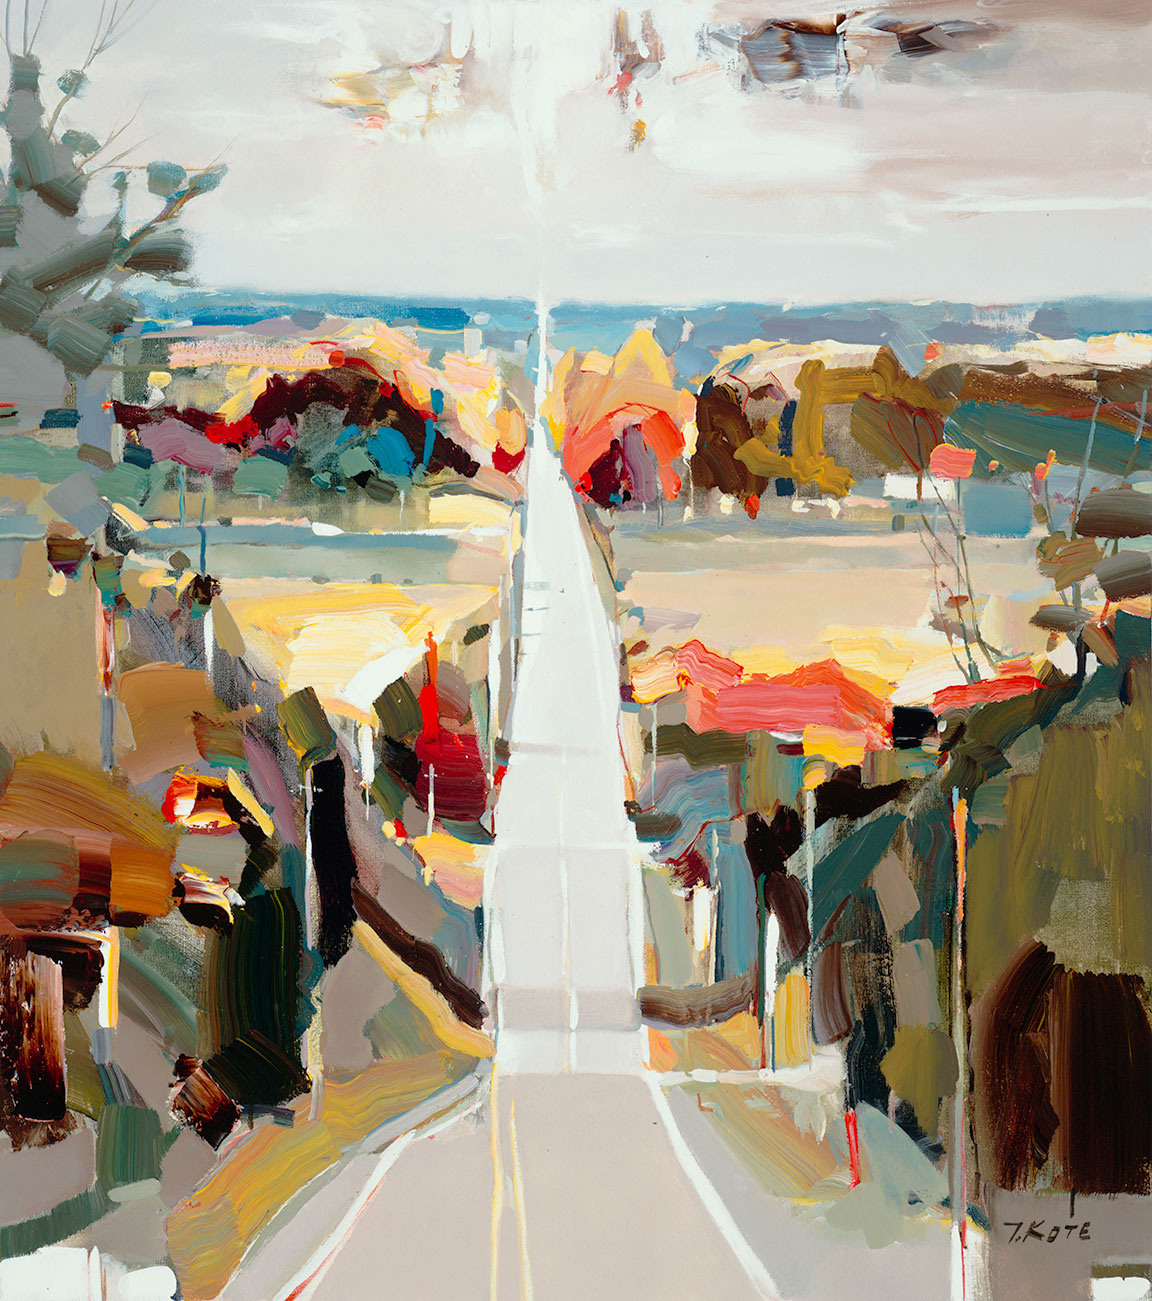 Josef Kote - A New Beginning